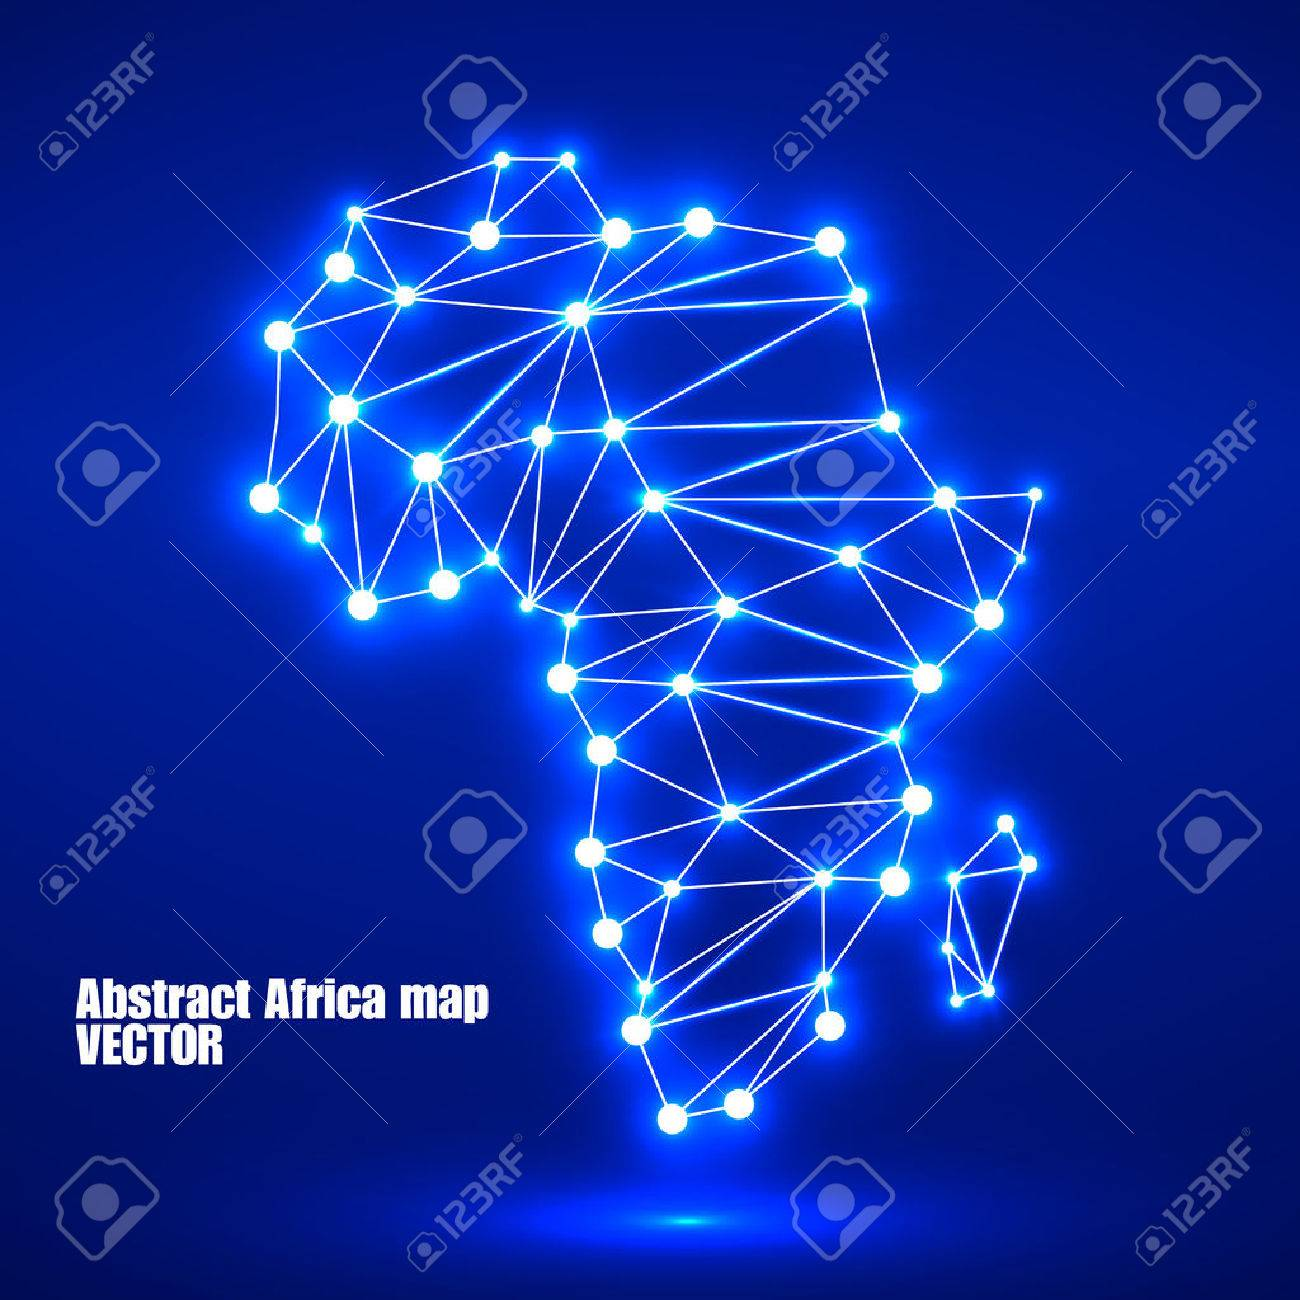 Abstract polygonal Africa map with glowing dots and lines, network connections. Vector illustration. Eps 10 - 52045716